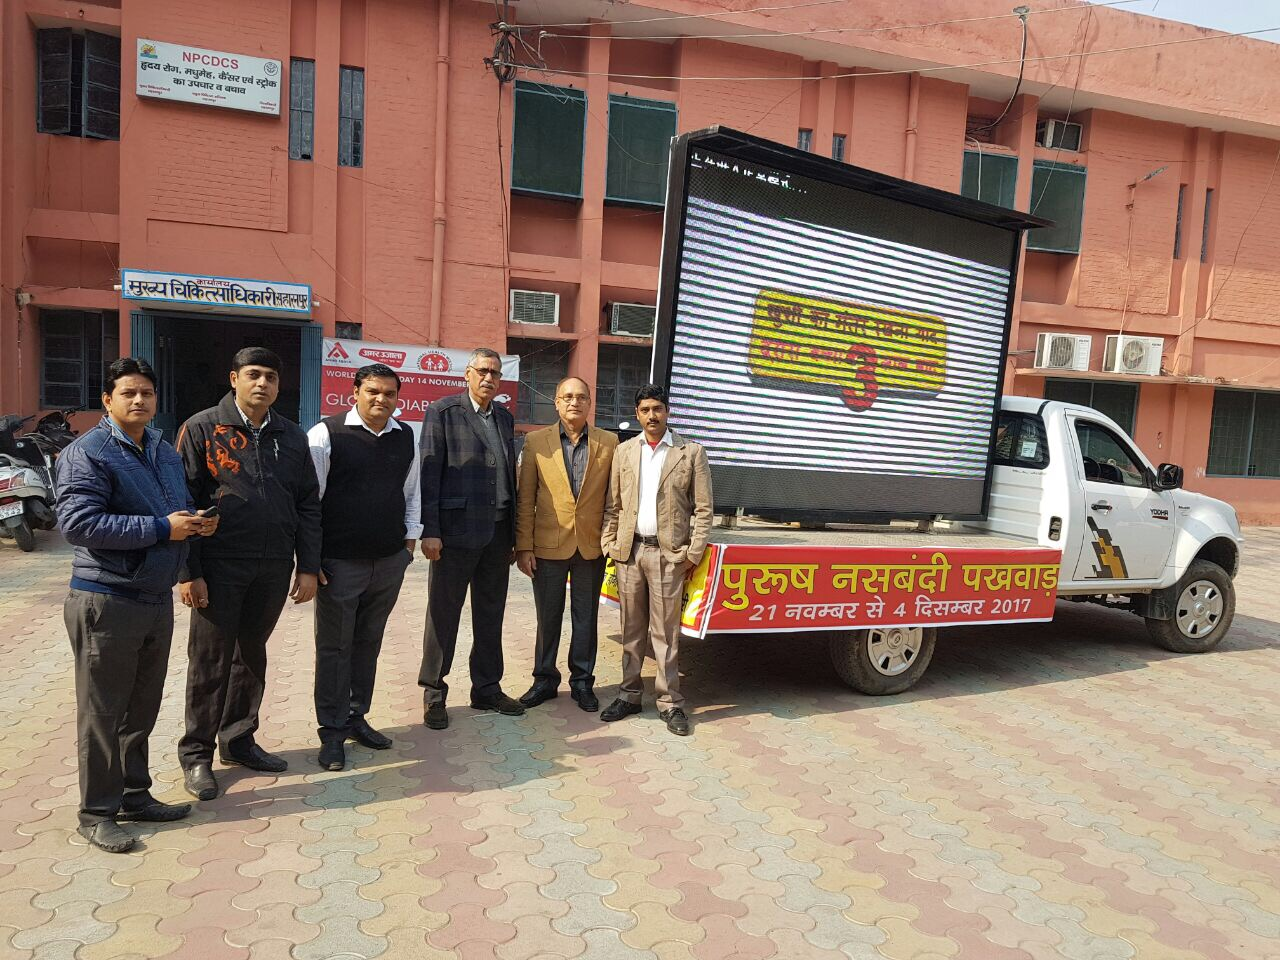 Saarthi rath flagged-off in Saharanpur, Uttar Pradesh as state observes Vasectomy Fortnight.